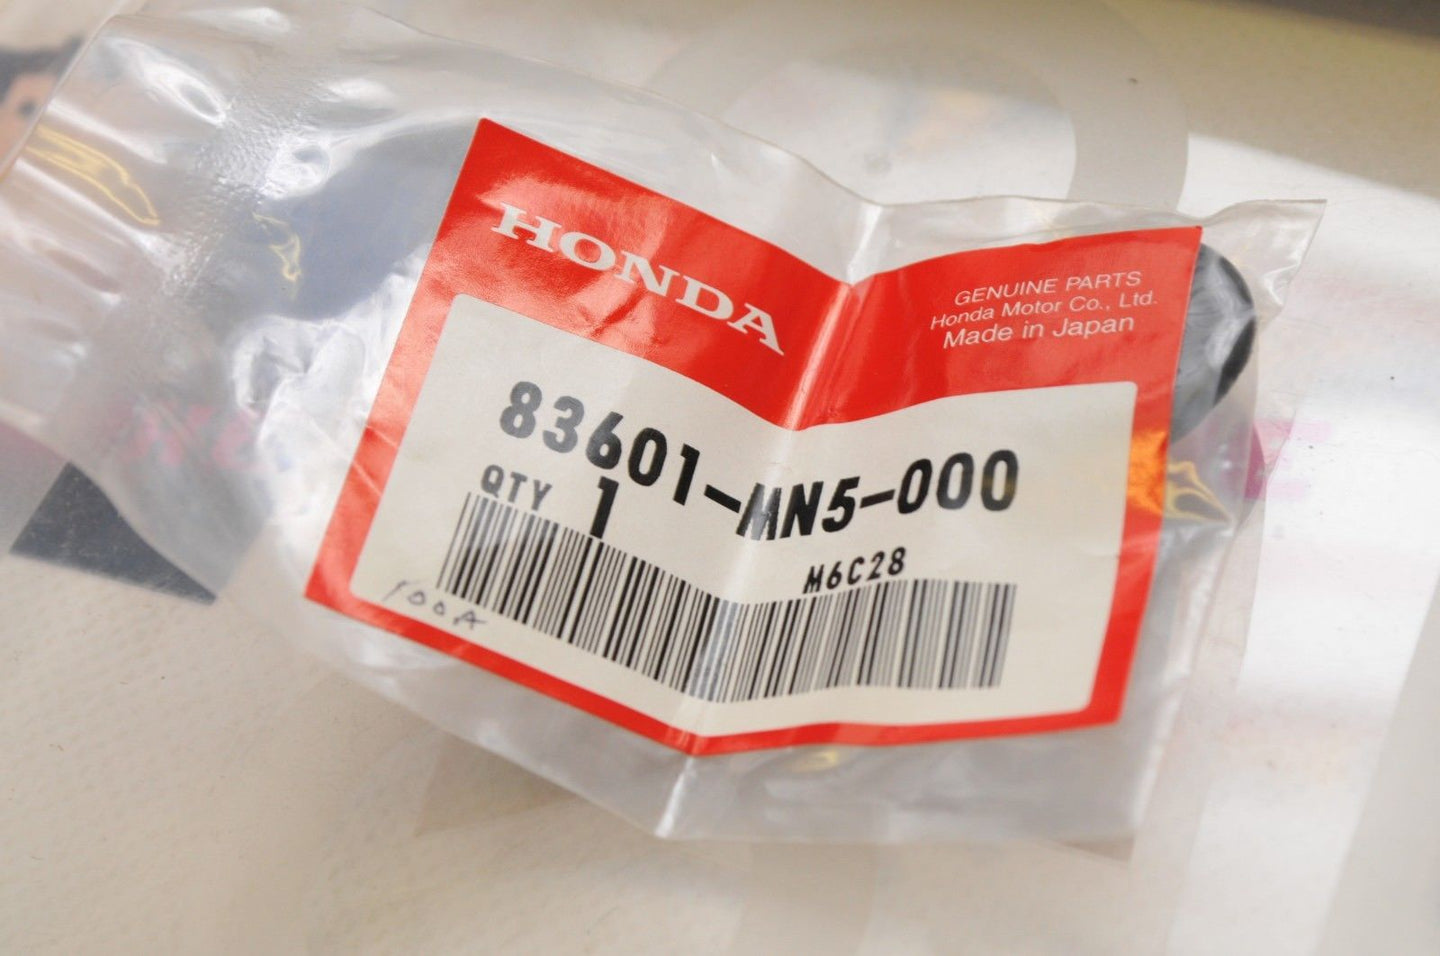 NEW NOS OEM HONDA 83601-MN5-000  GROMMET, SIDE COVER - FIARING SIDE COVER GL1500 - Motomike Canada